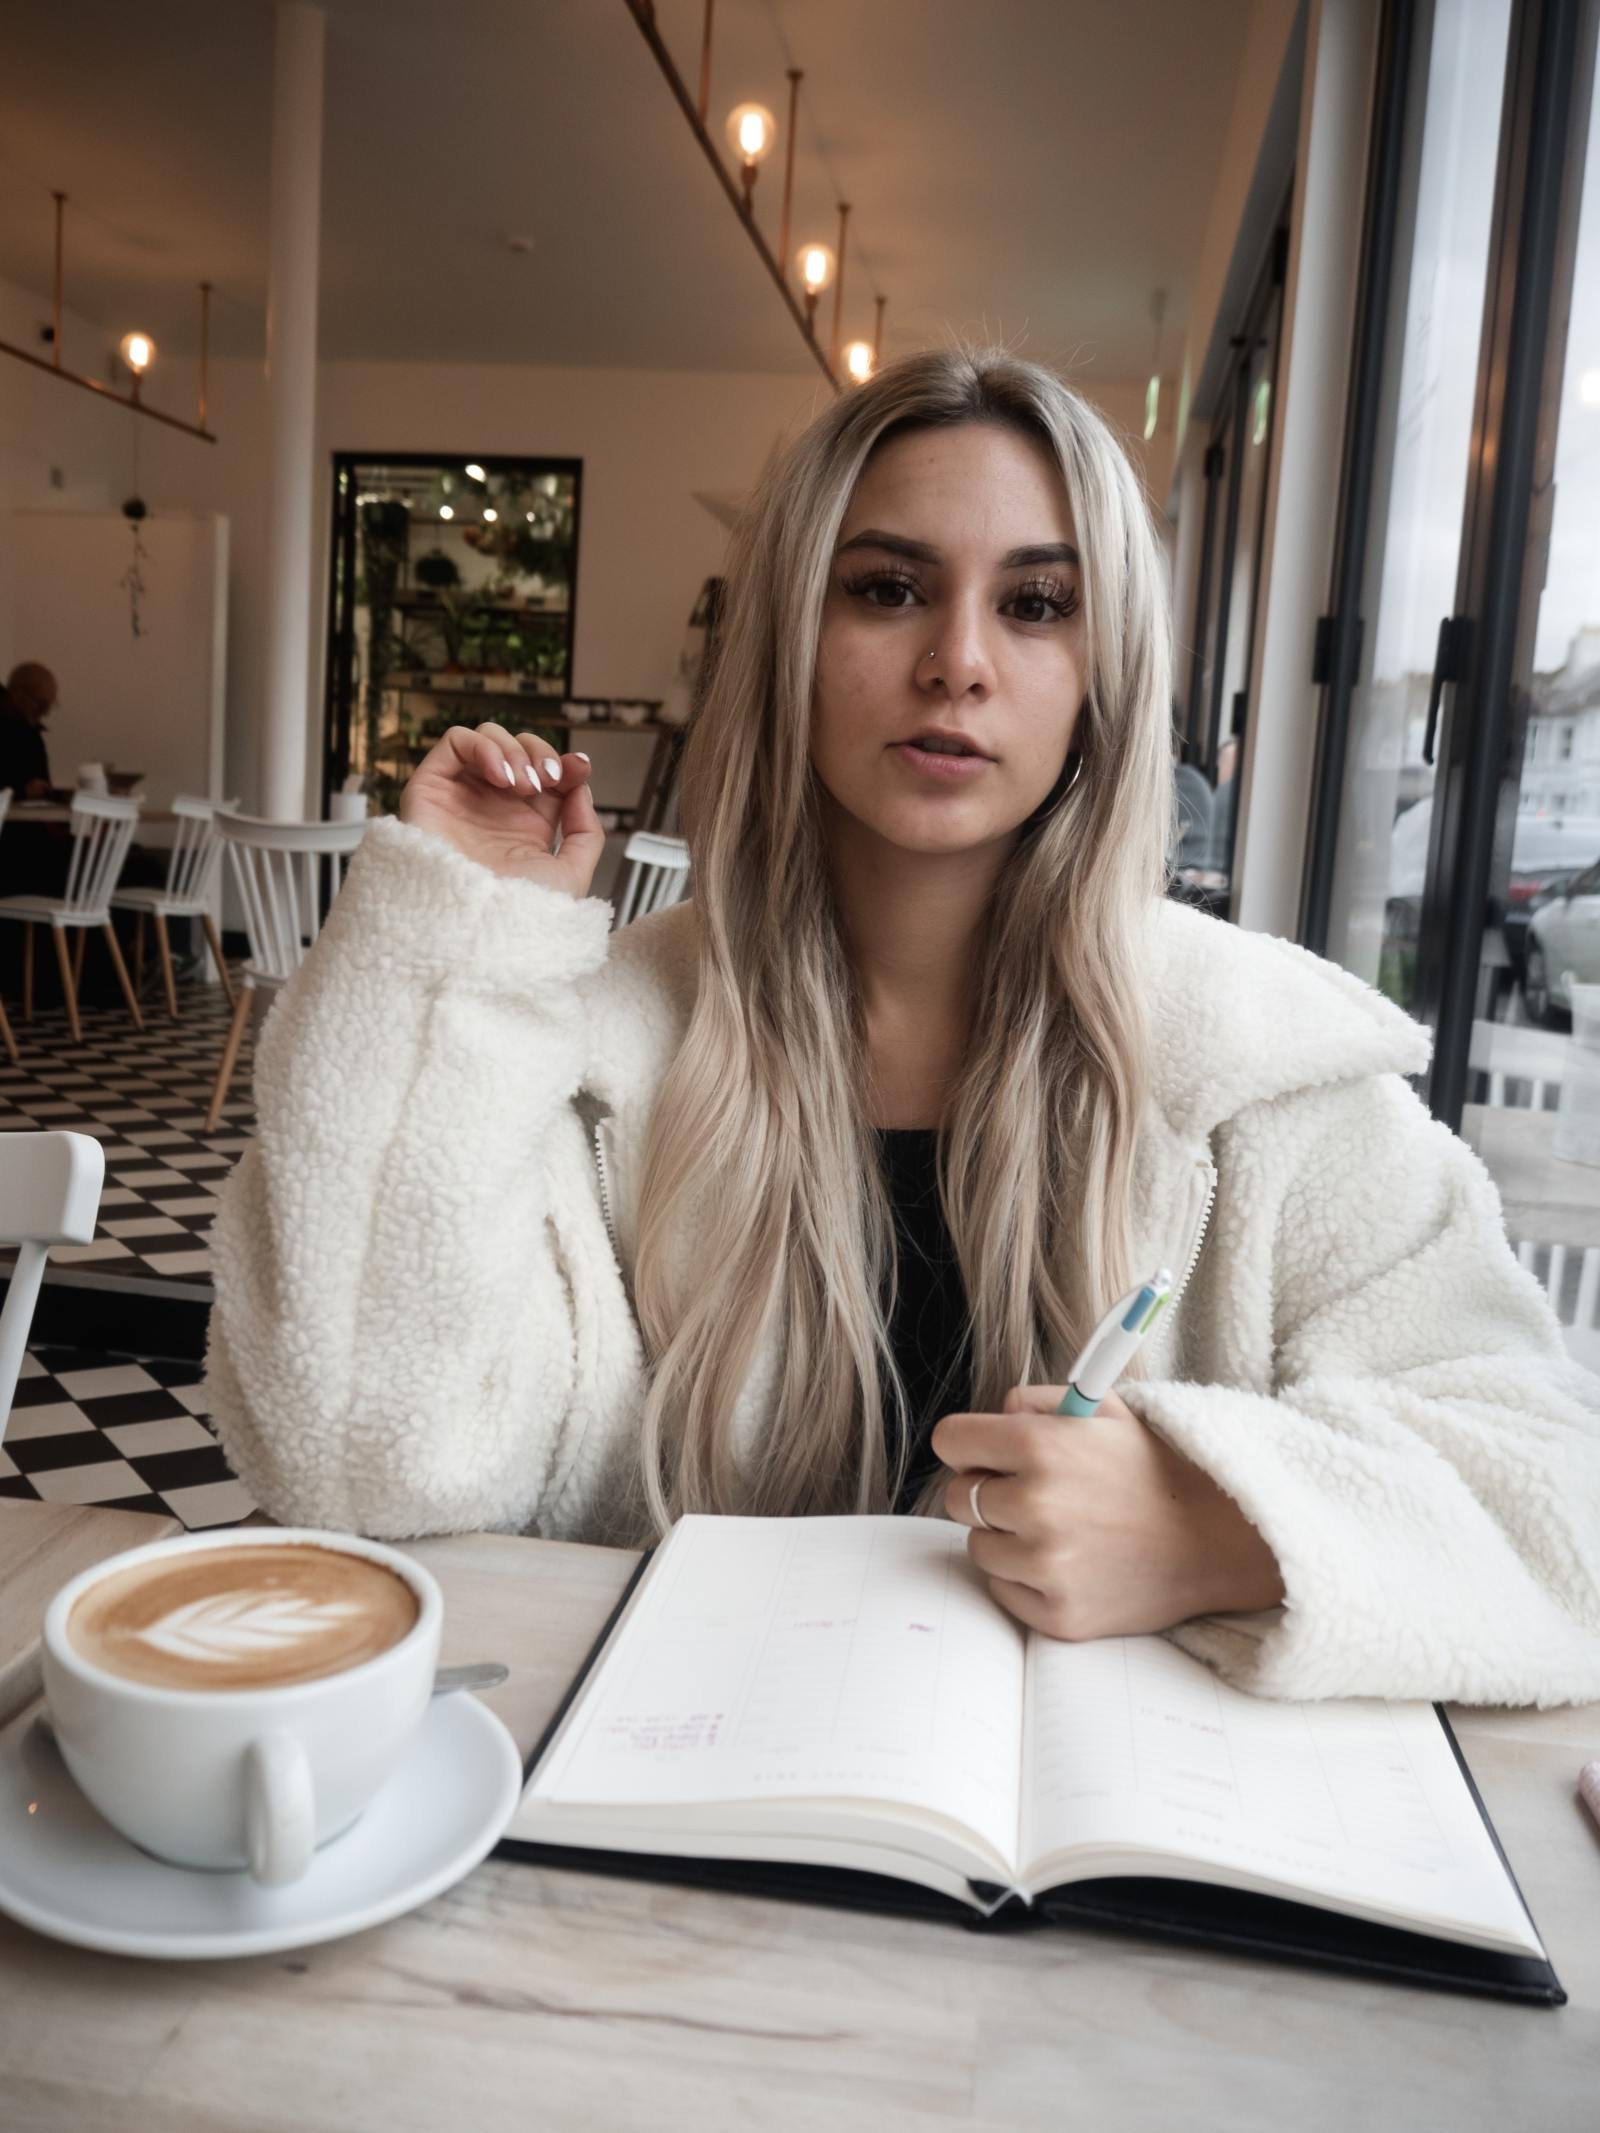 yasmin stefanie cgd london goals 2020 diary